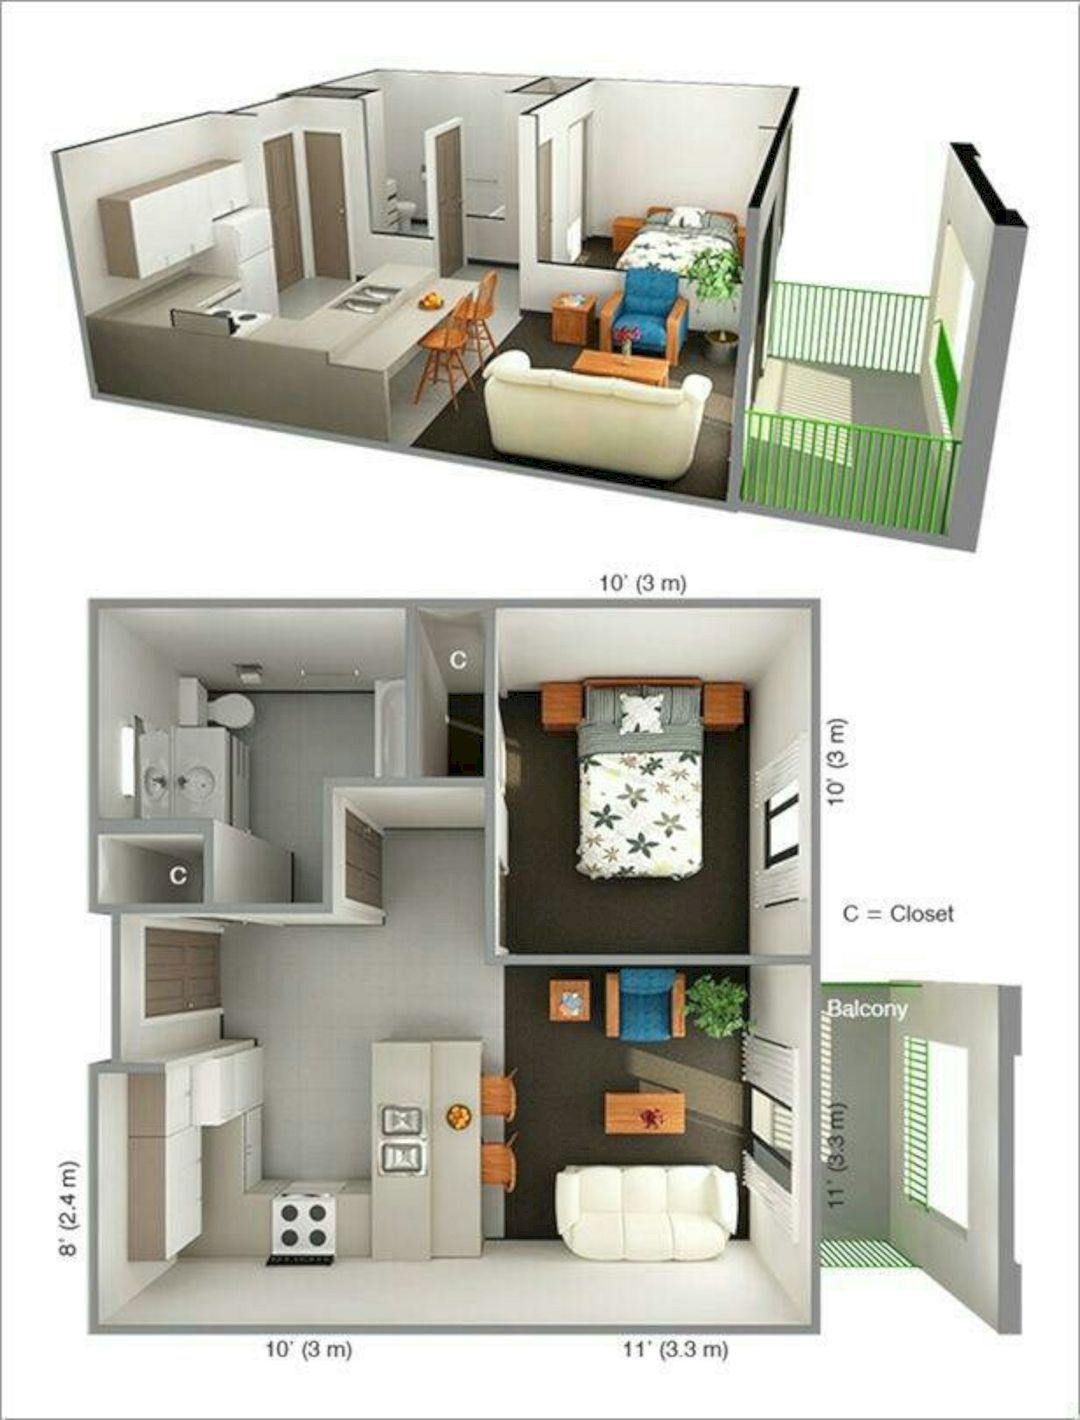 One Bedroom Apartment Plans And Designs Amazing Welldesigned 3D House Plan Design Ideas  3D House Plans House Design Ideas